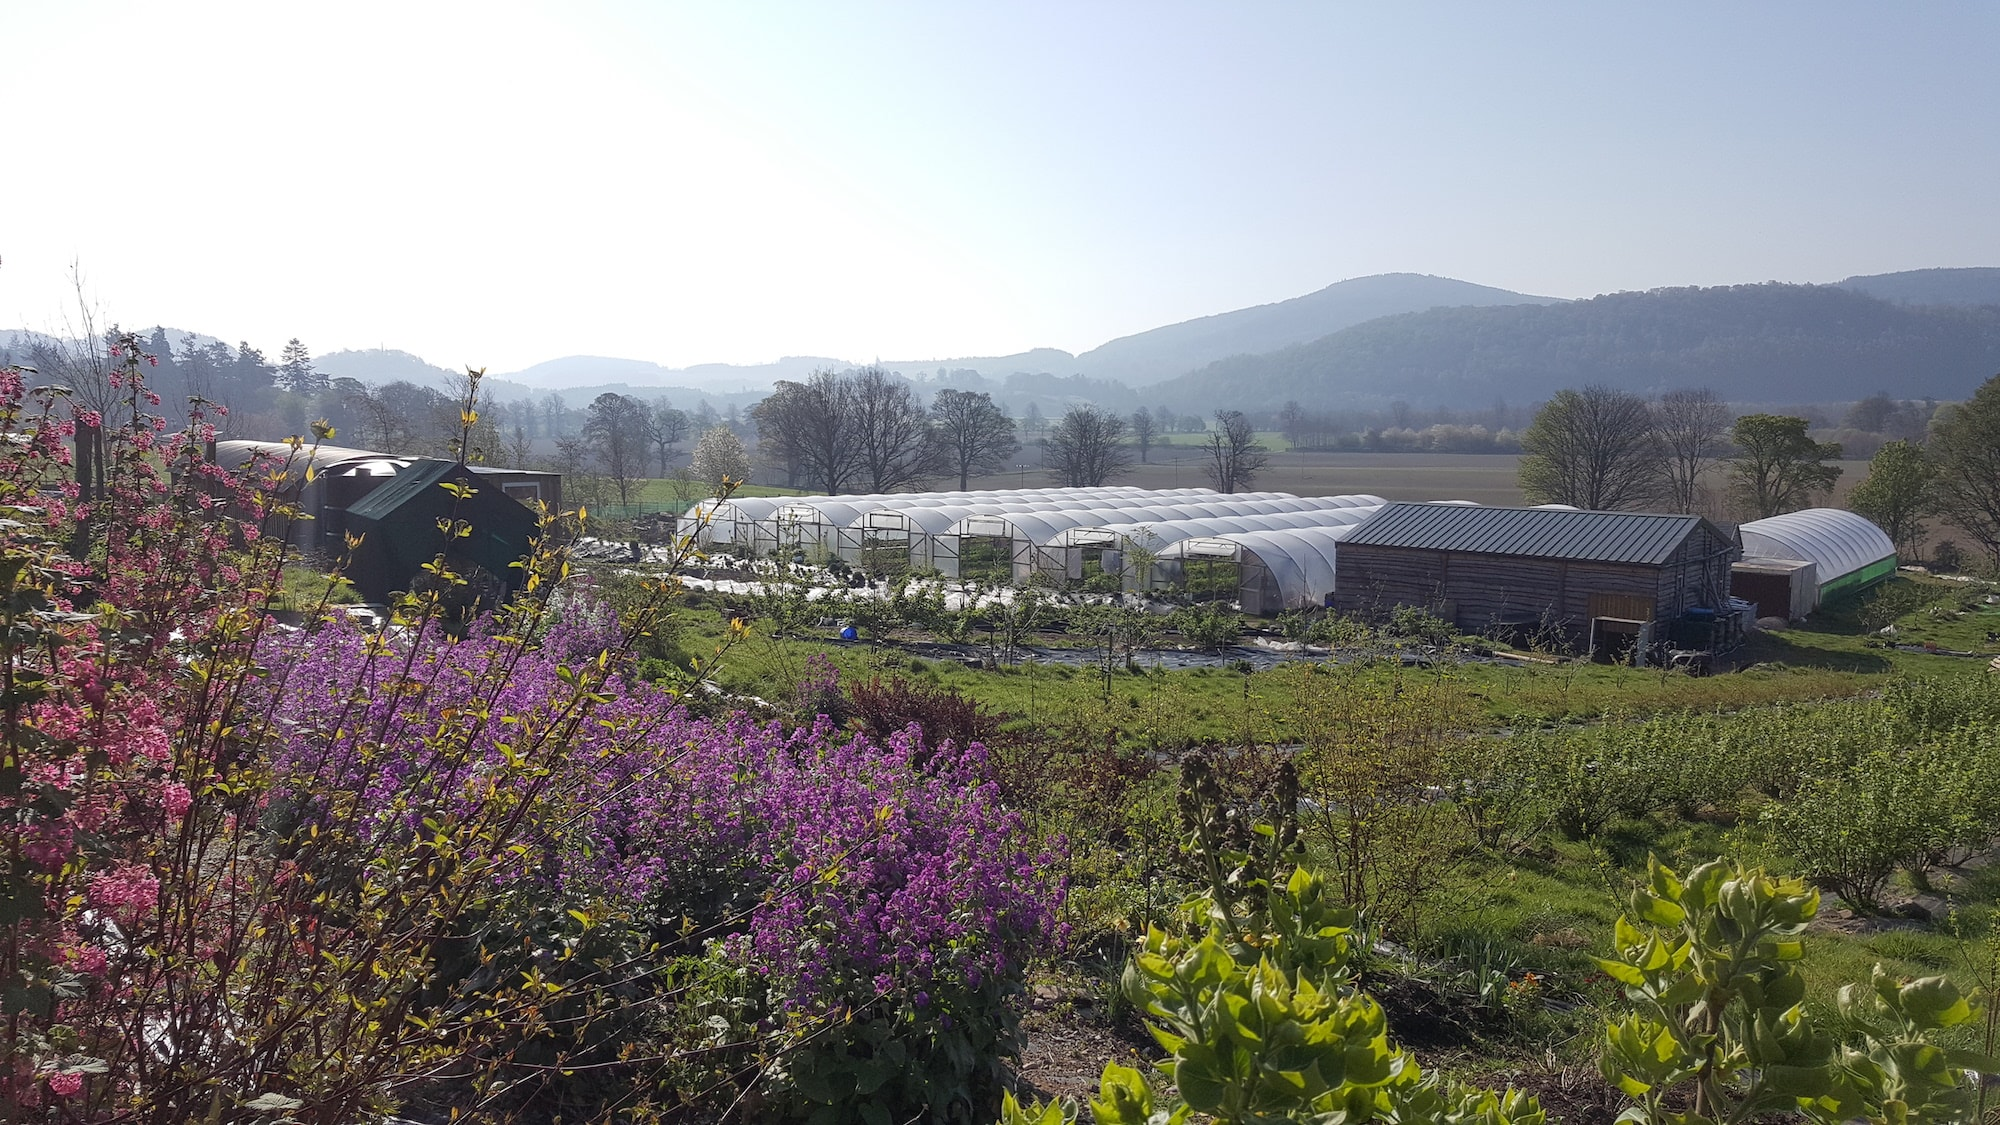 Crops & Polytunnels